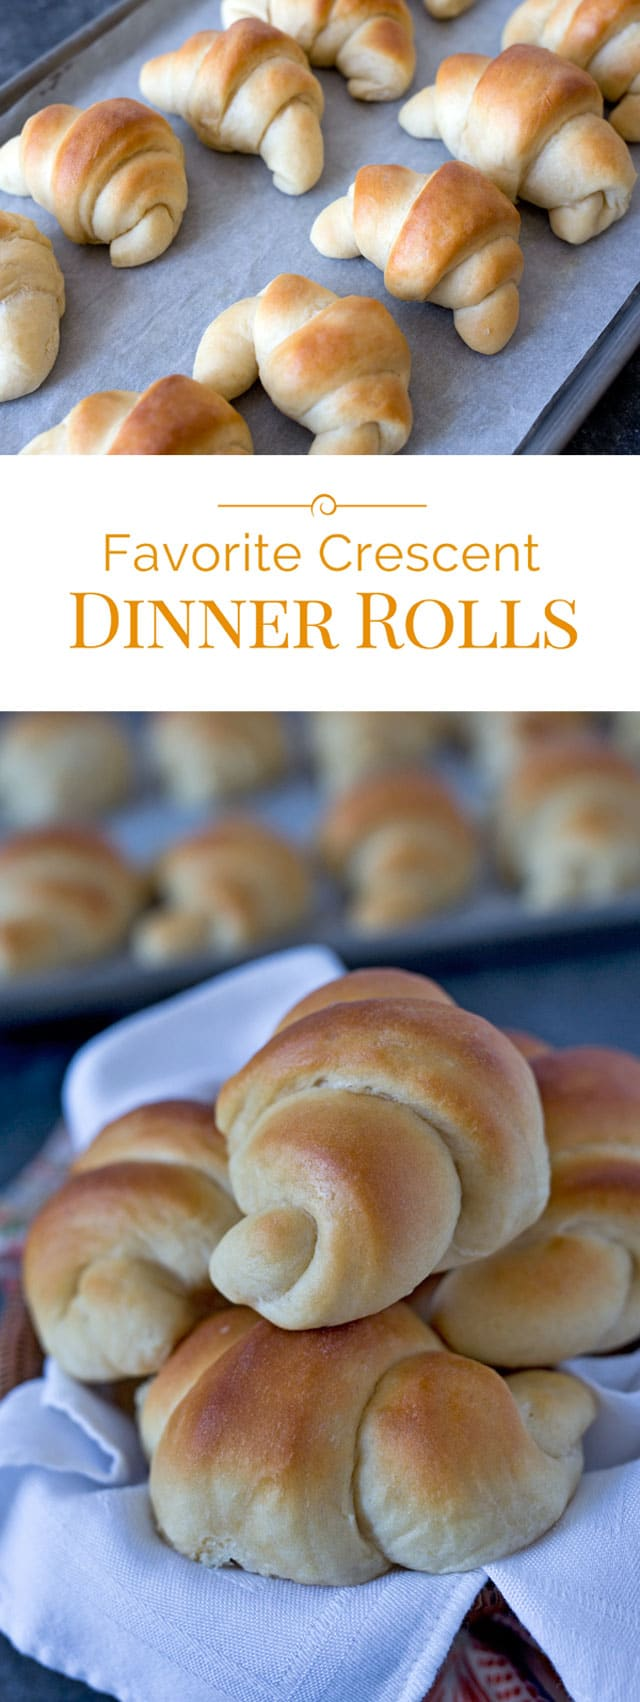 This is my favorite dinner roll recipe. It has a mix of whole wheat pastry flour and all purpose flour so it gives the rolls just a little more texture and body, but they're still light and fluffy.